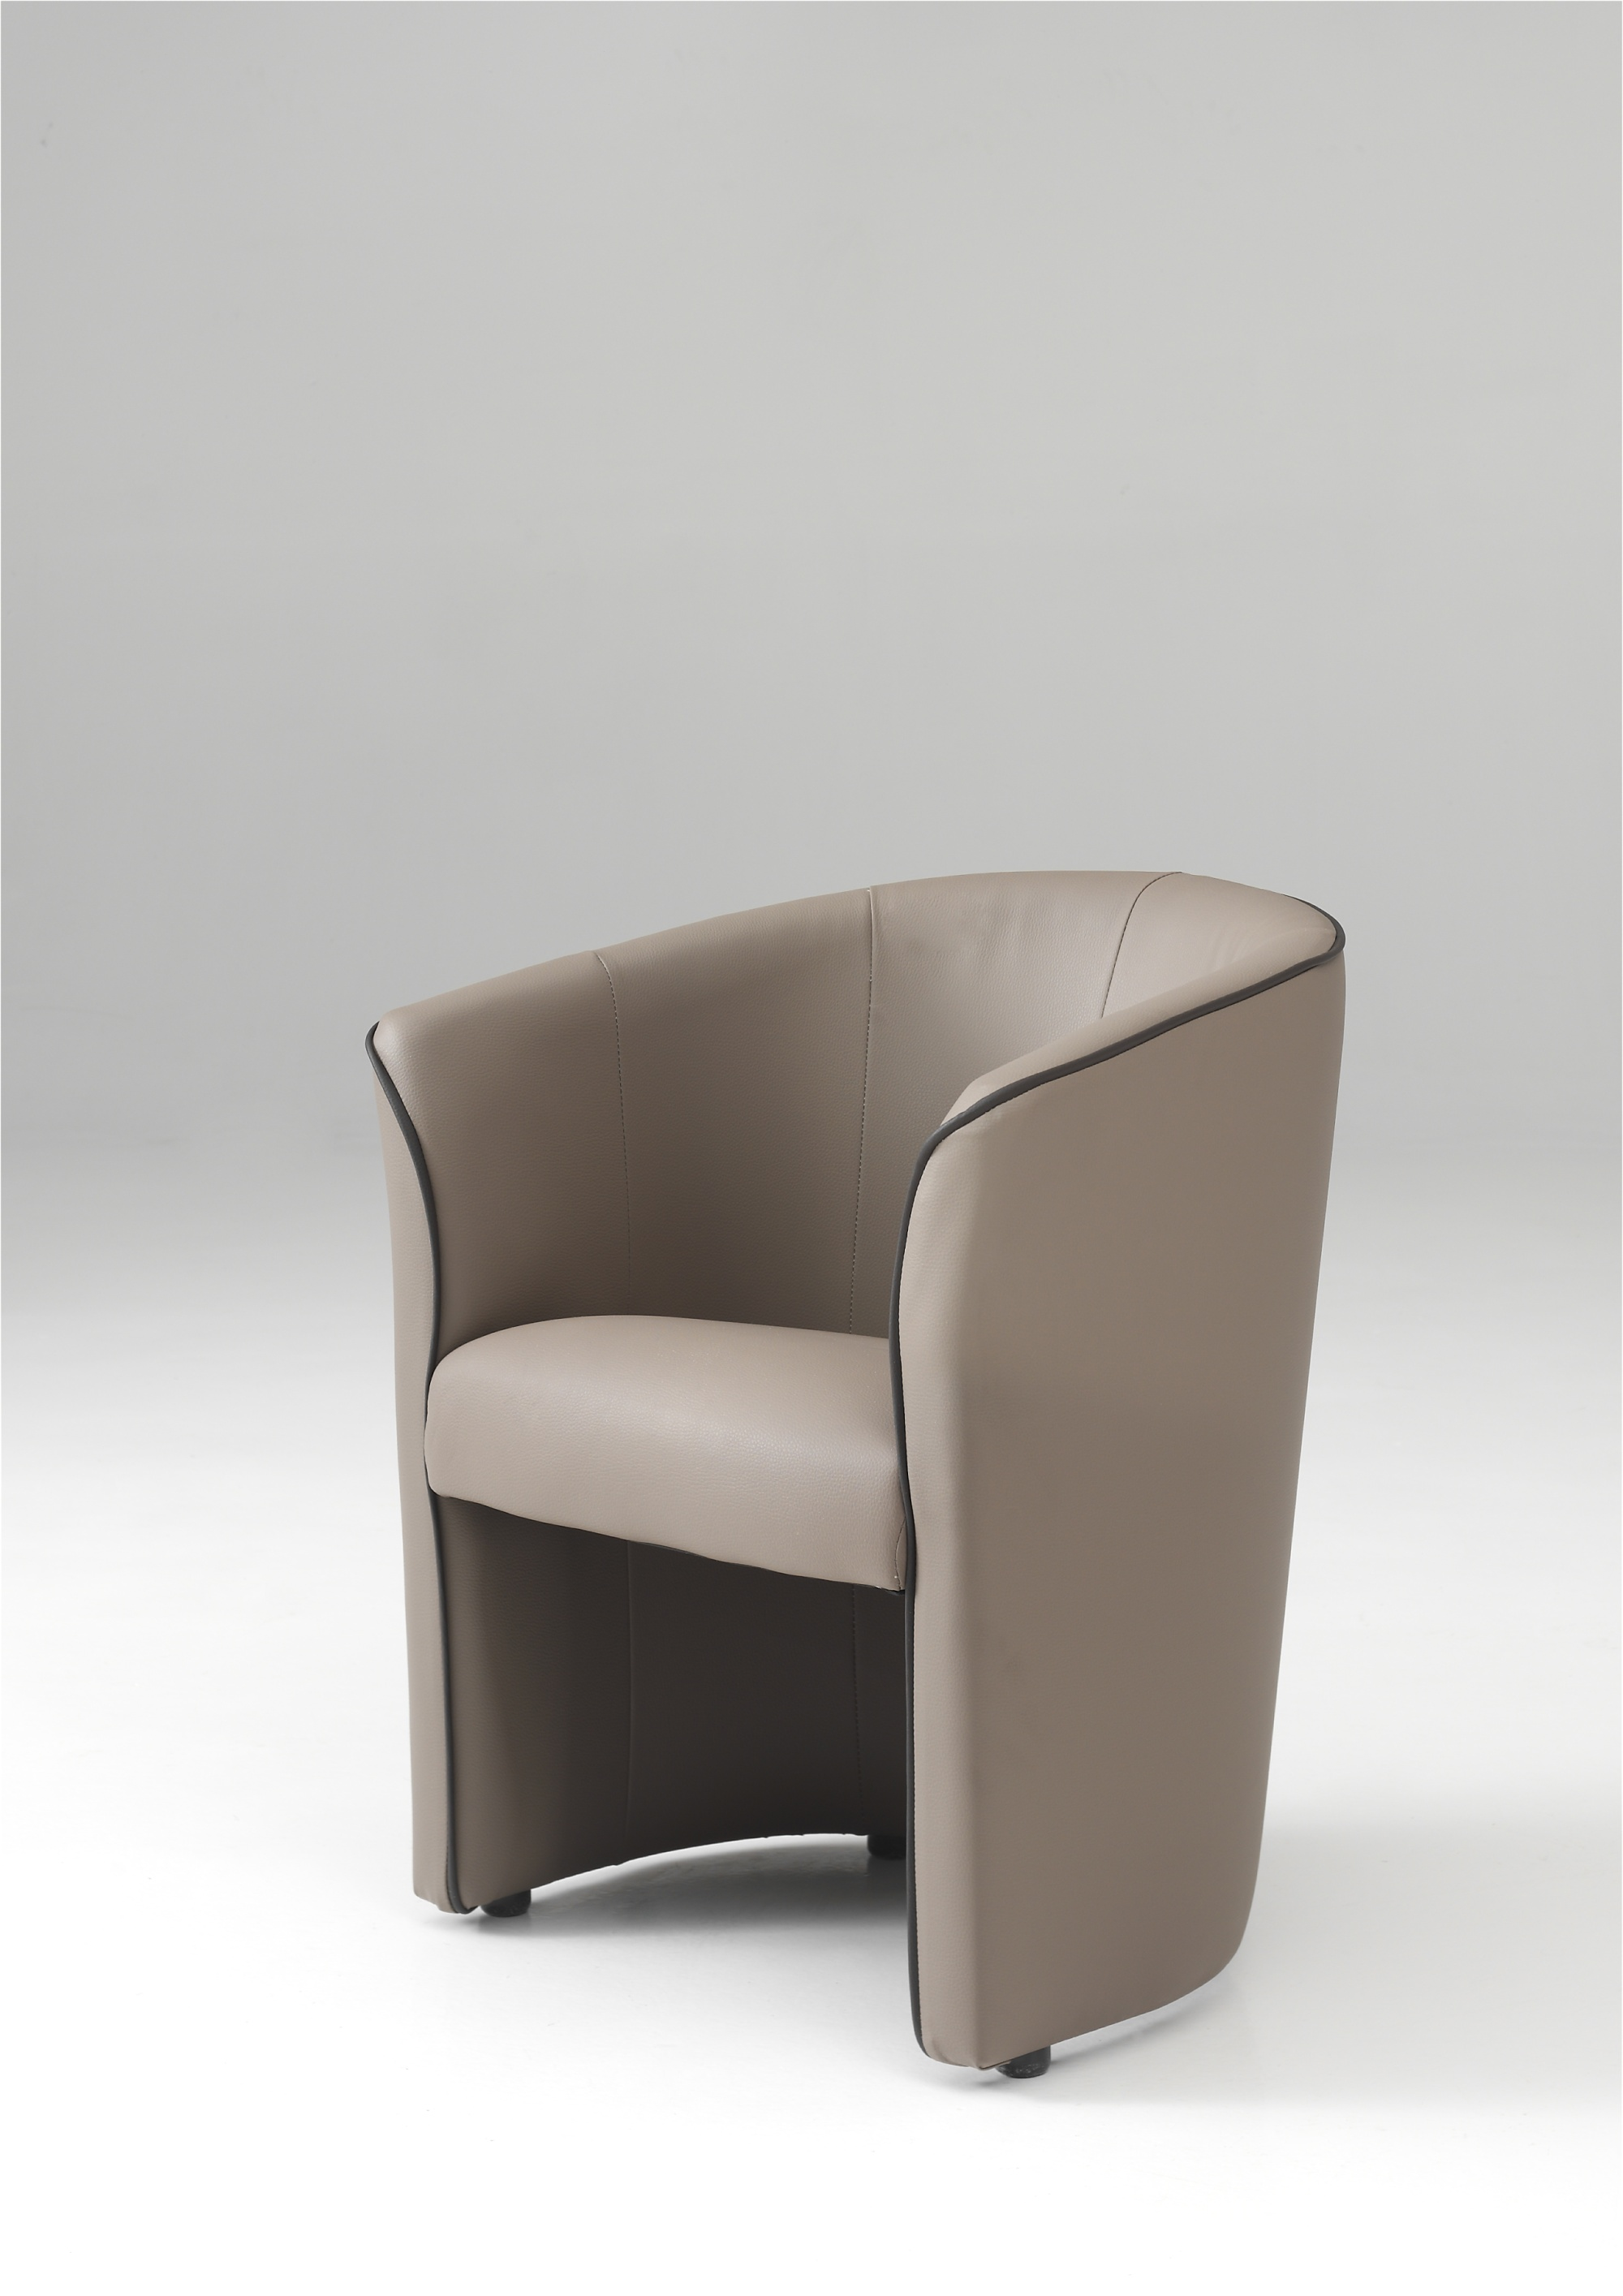 Fauteuil cabriolet moderne en PU taupe Cyrille